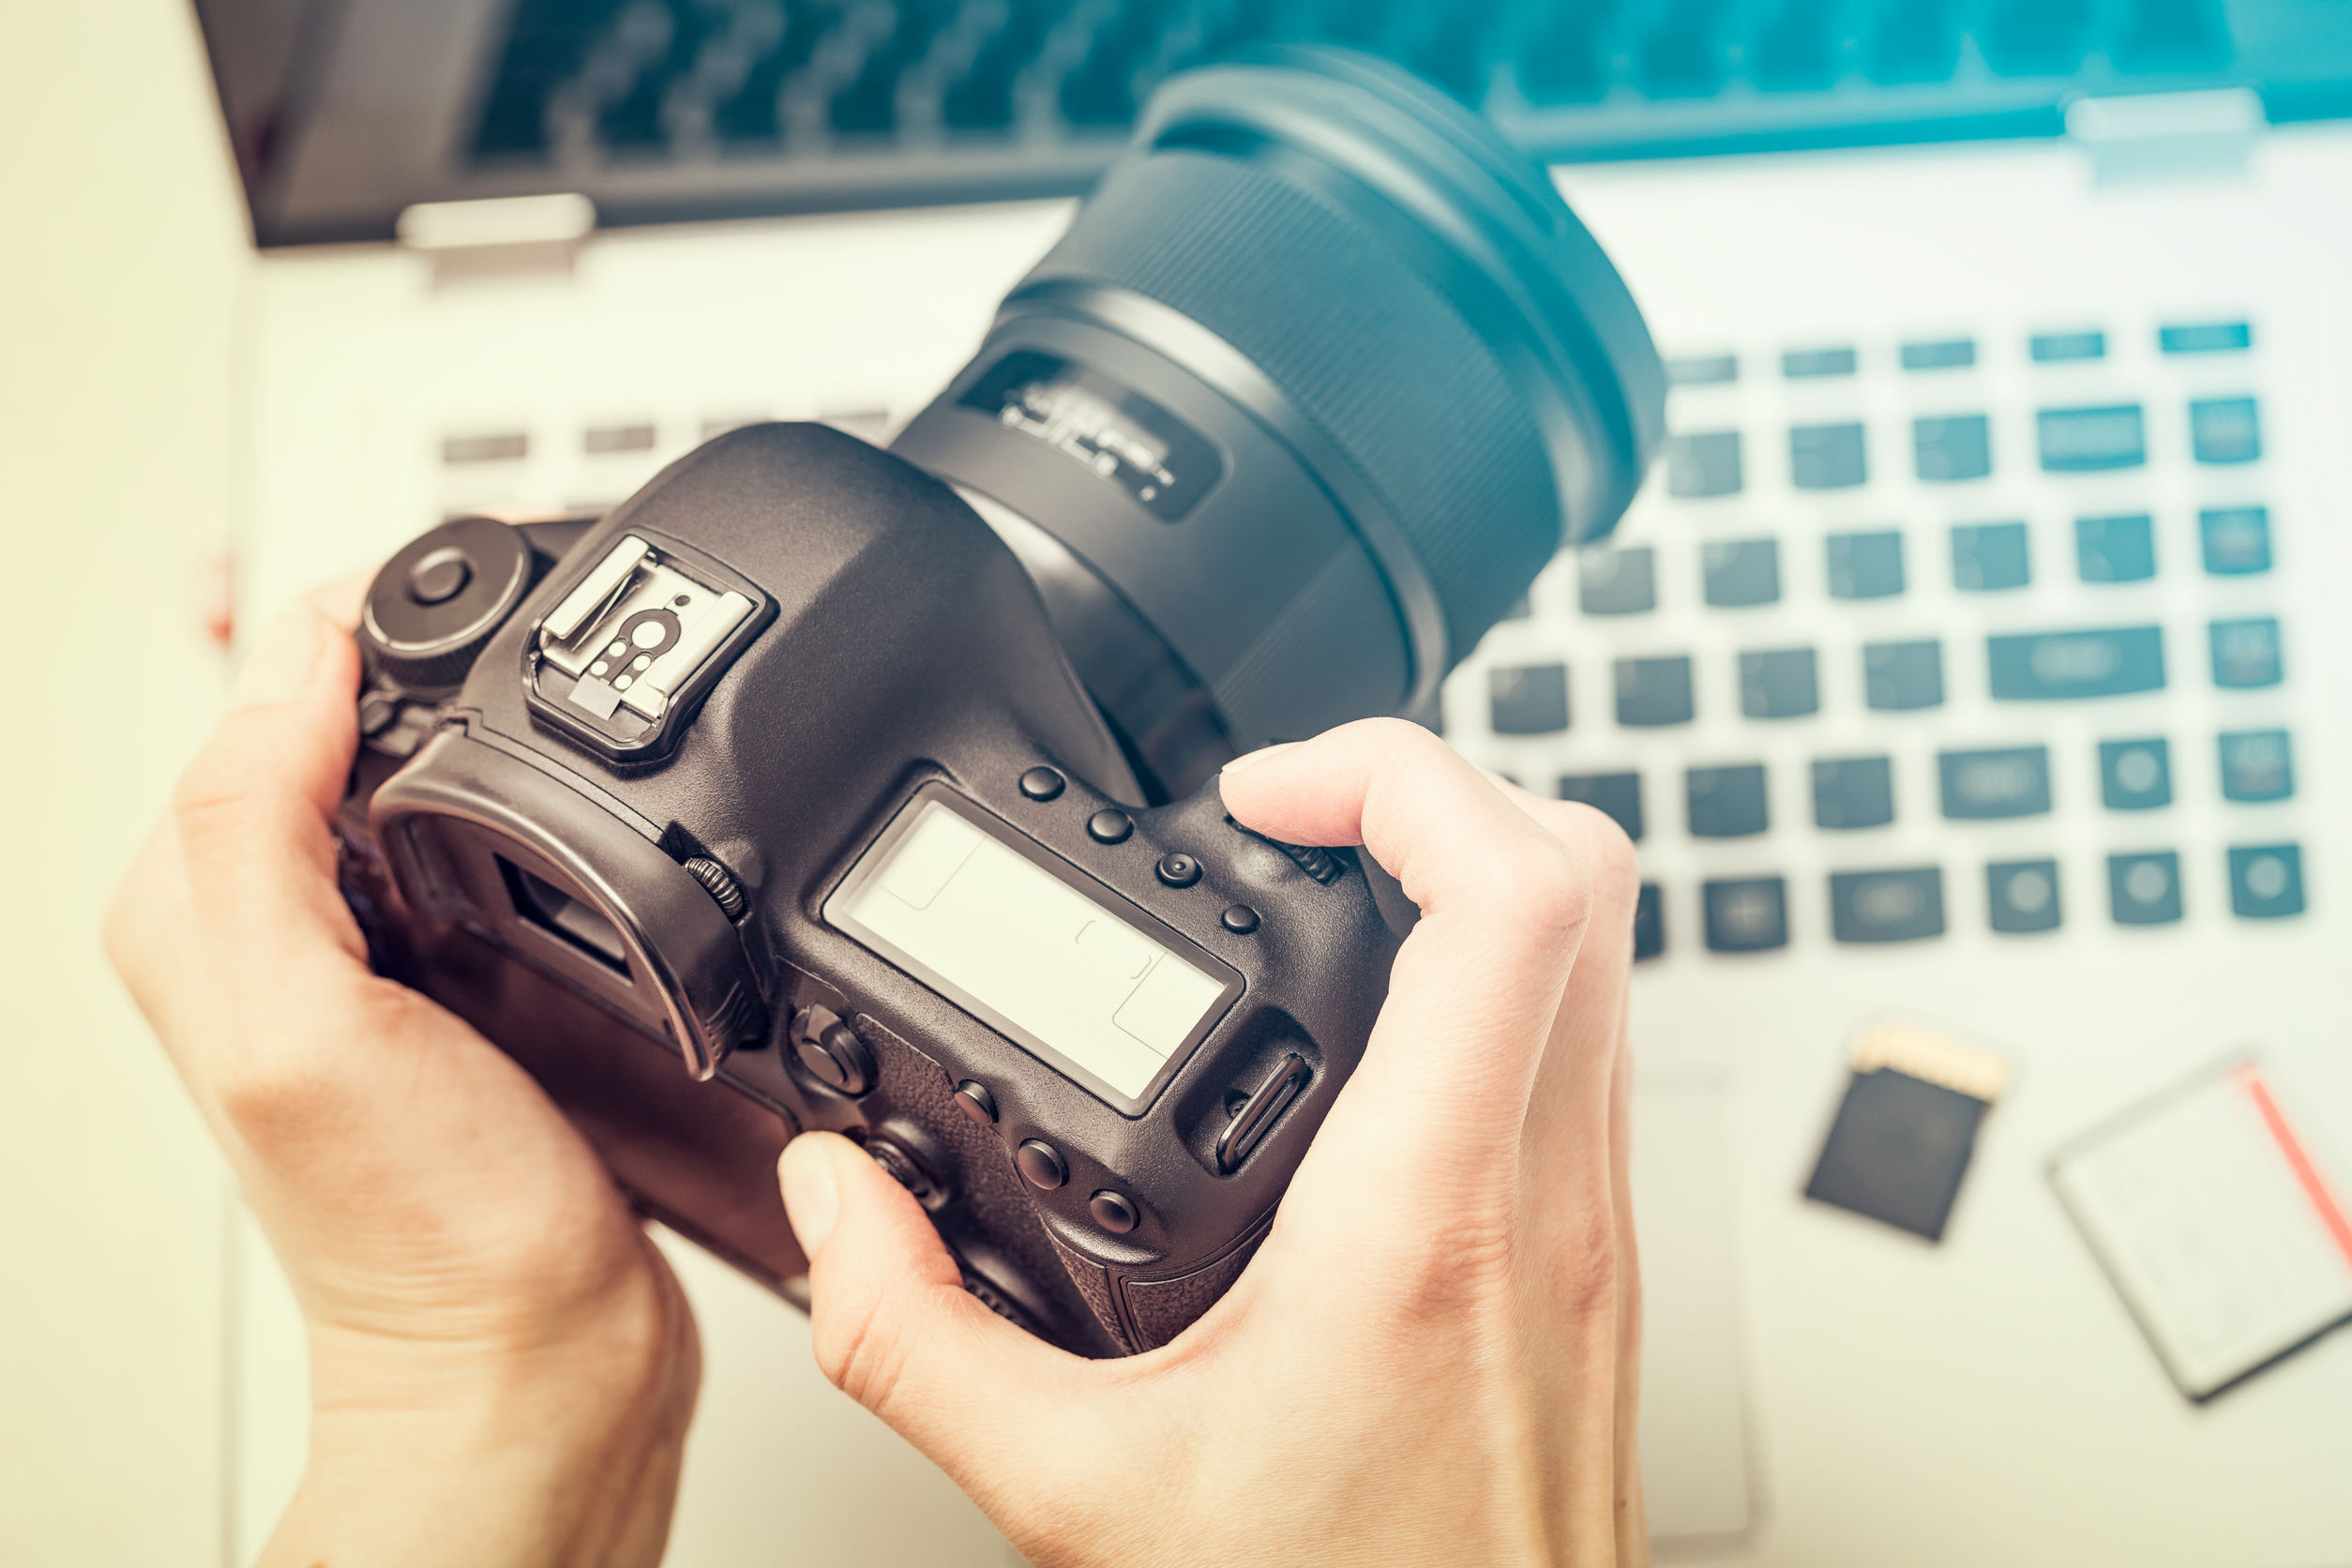 Best Digital Camera 2020: Shopping Guide and Review